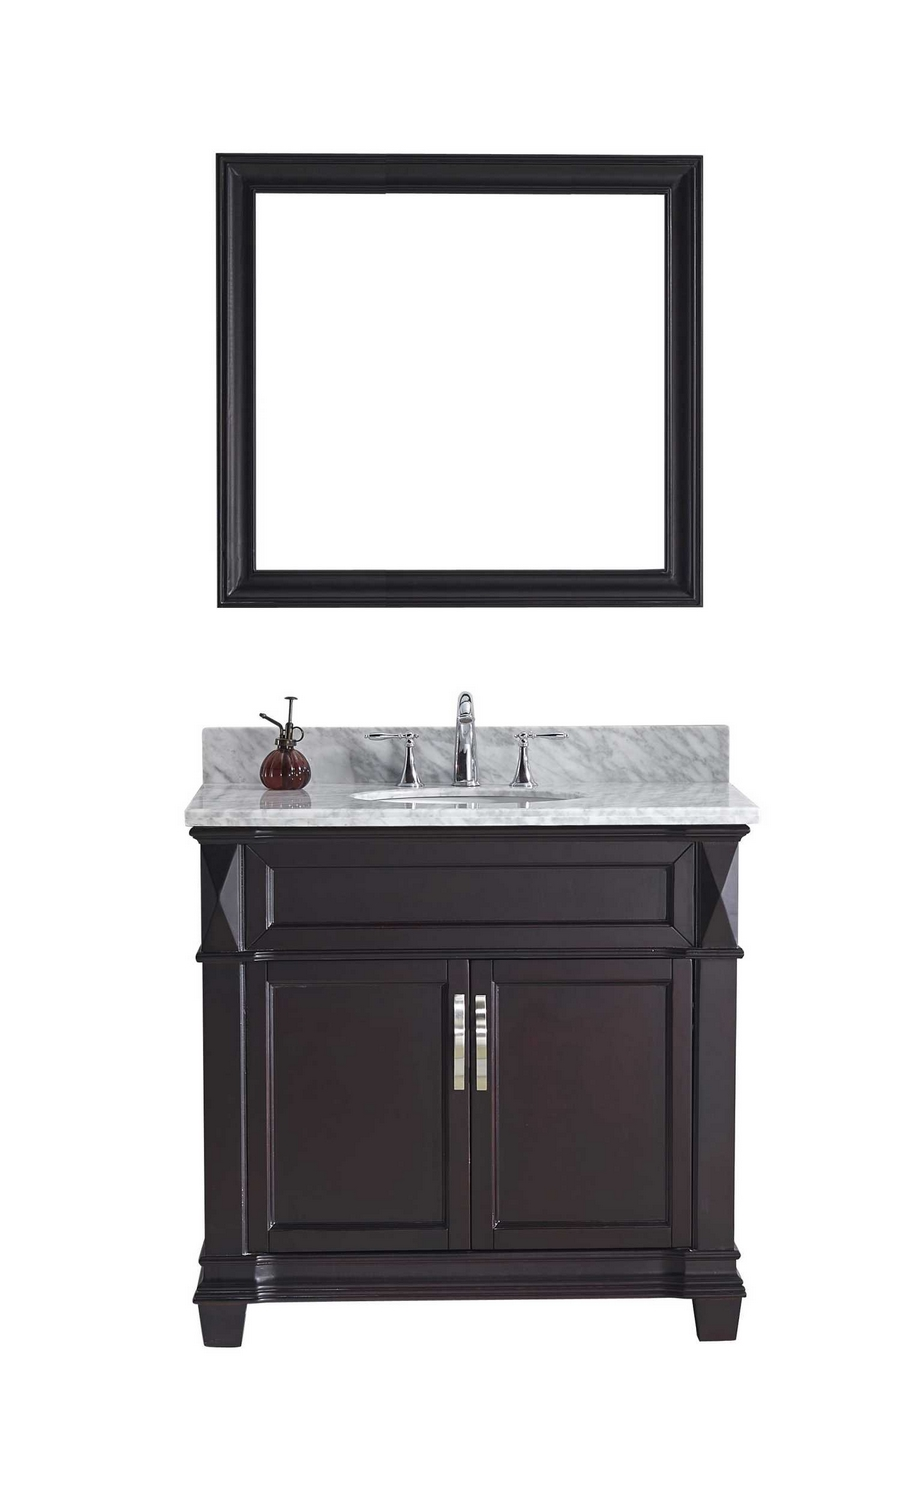 virtu usa victoria 36 single bathroom vanity cabinet set in espresso